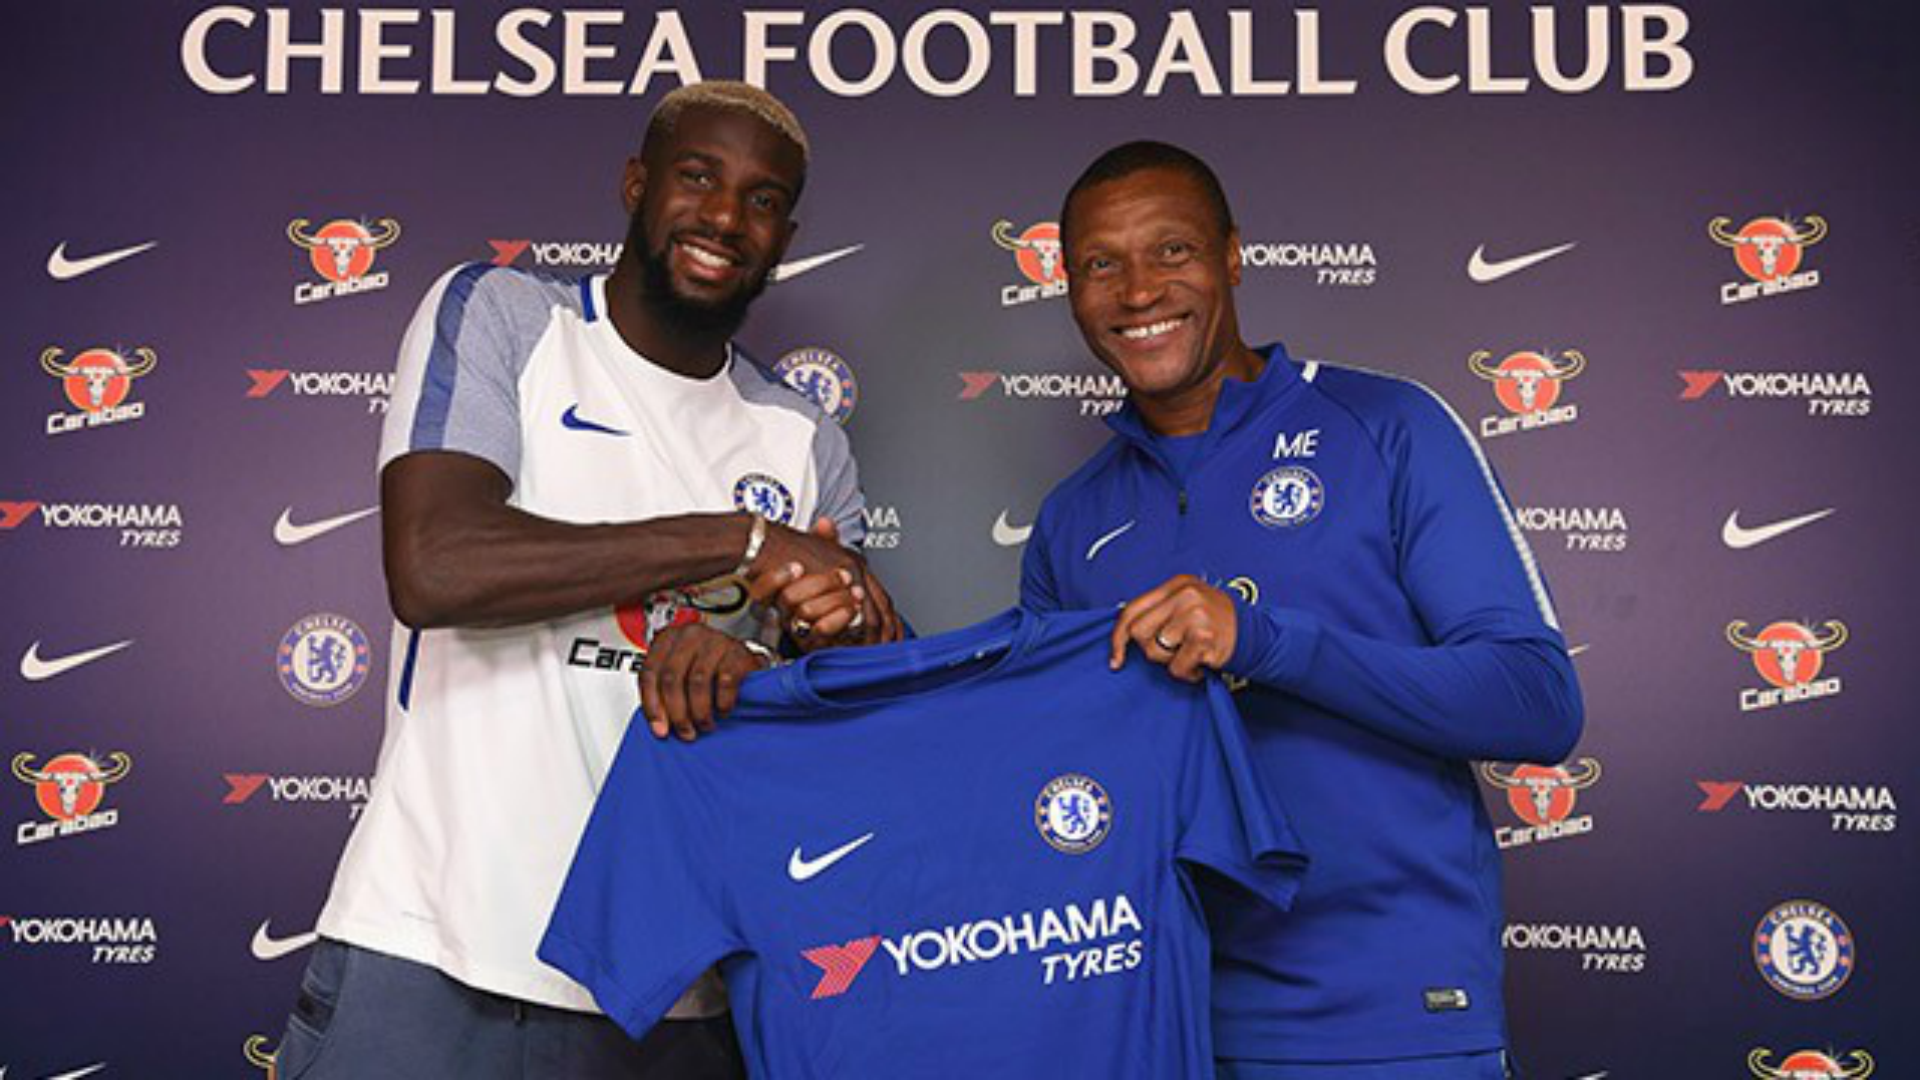 Chelsea have managed to purchaseBakayoko for a reported sum of £40million and fans have every right to be excited.